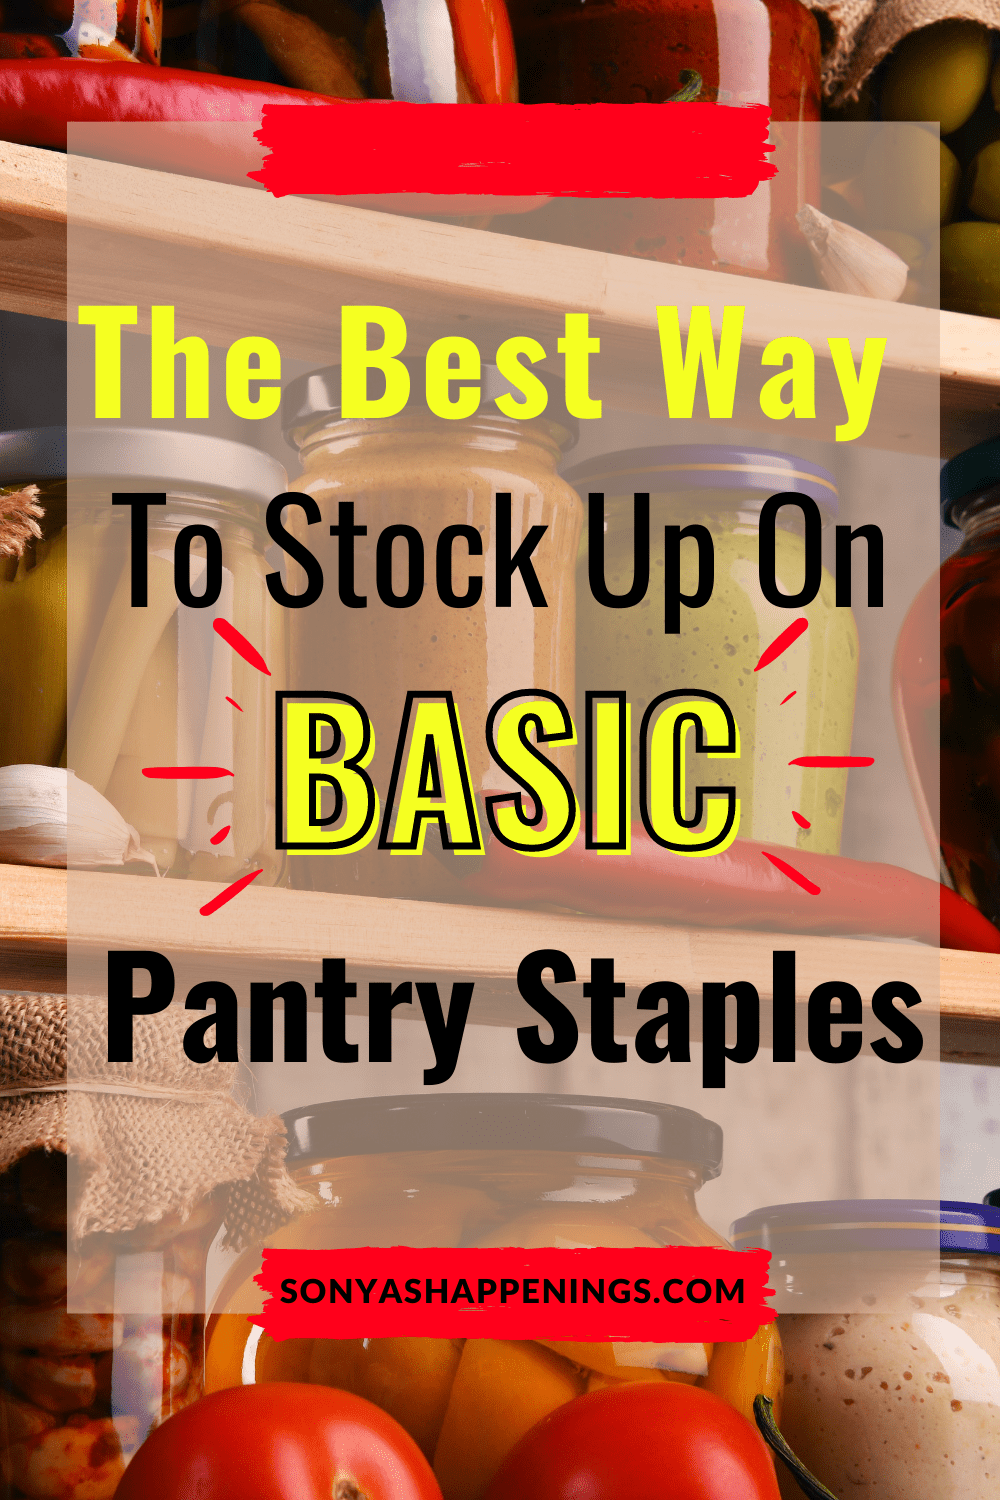 Stock Up On Basic Pantry Staples To Save Time And Money For The Holidays